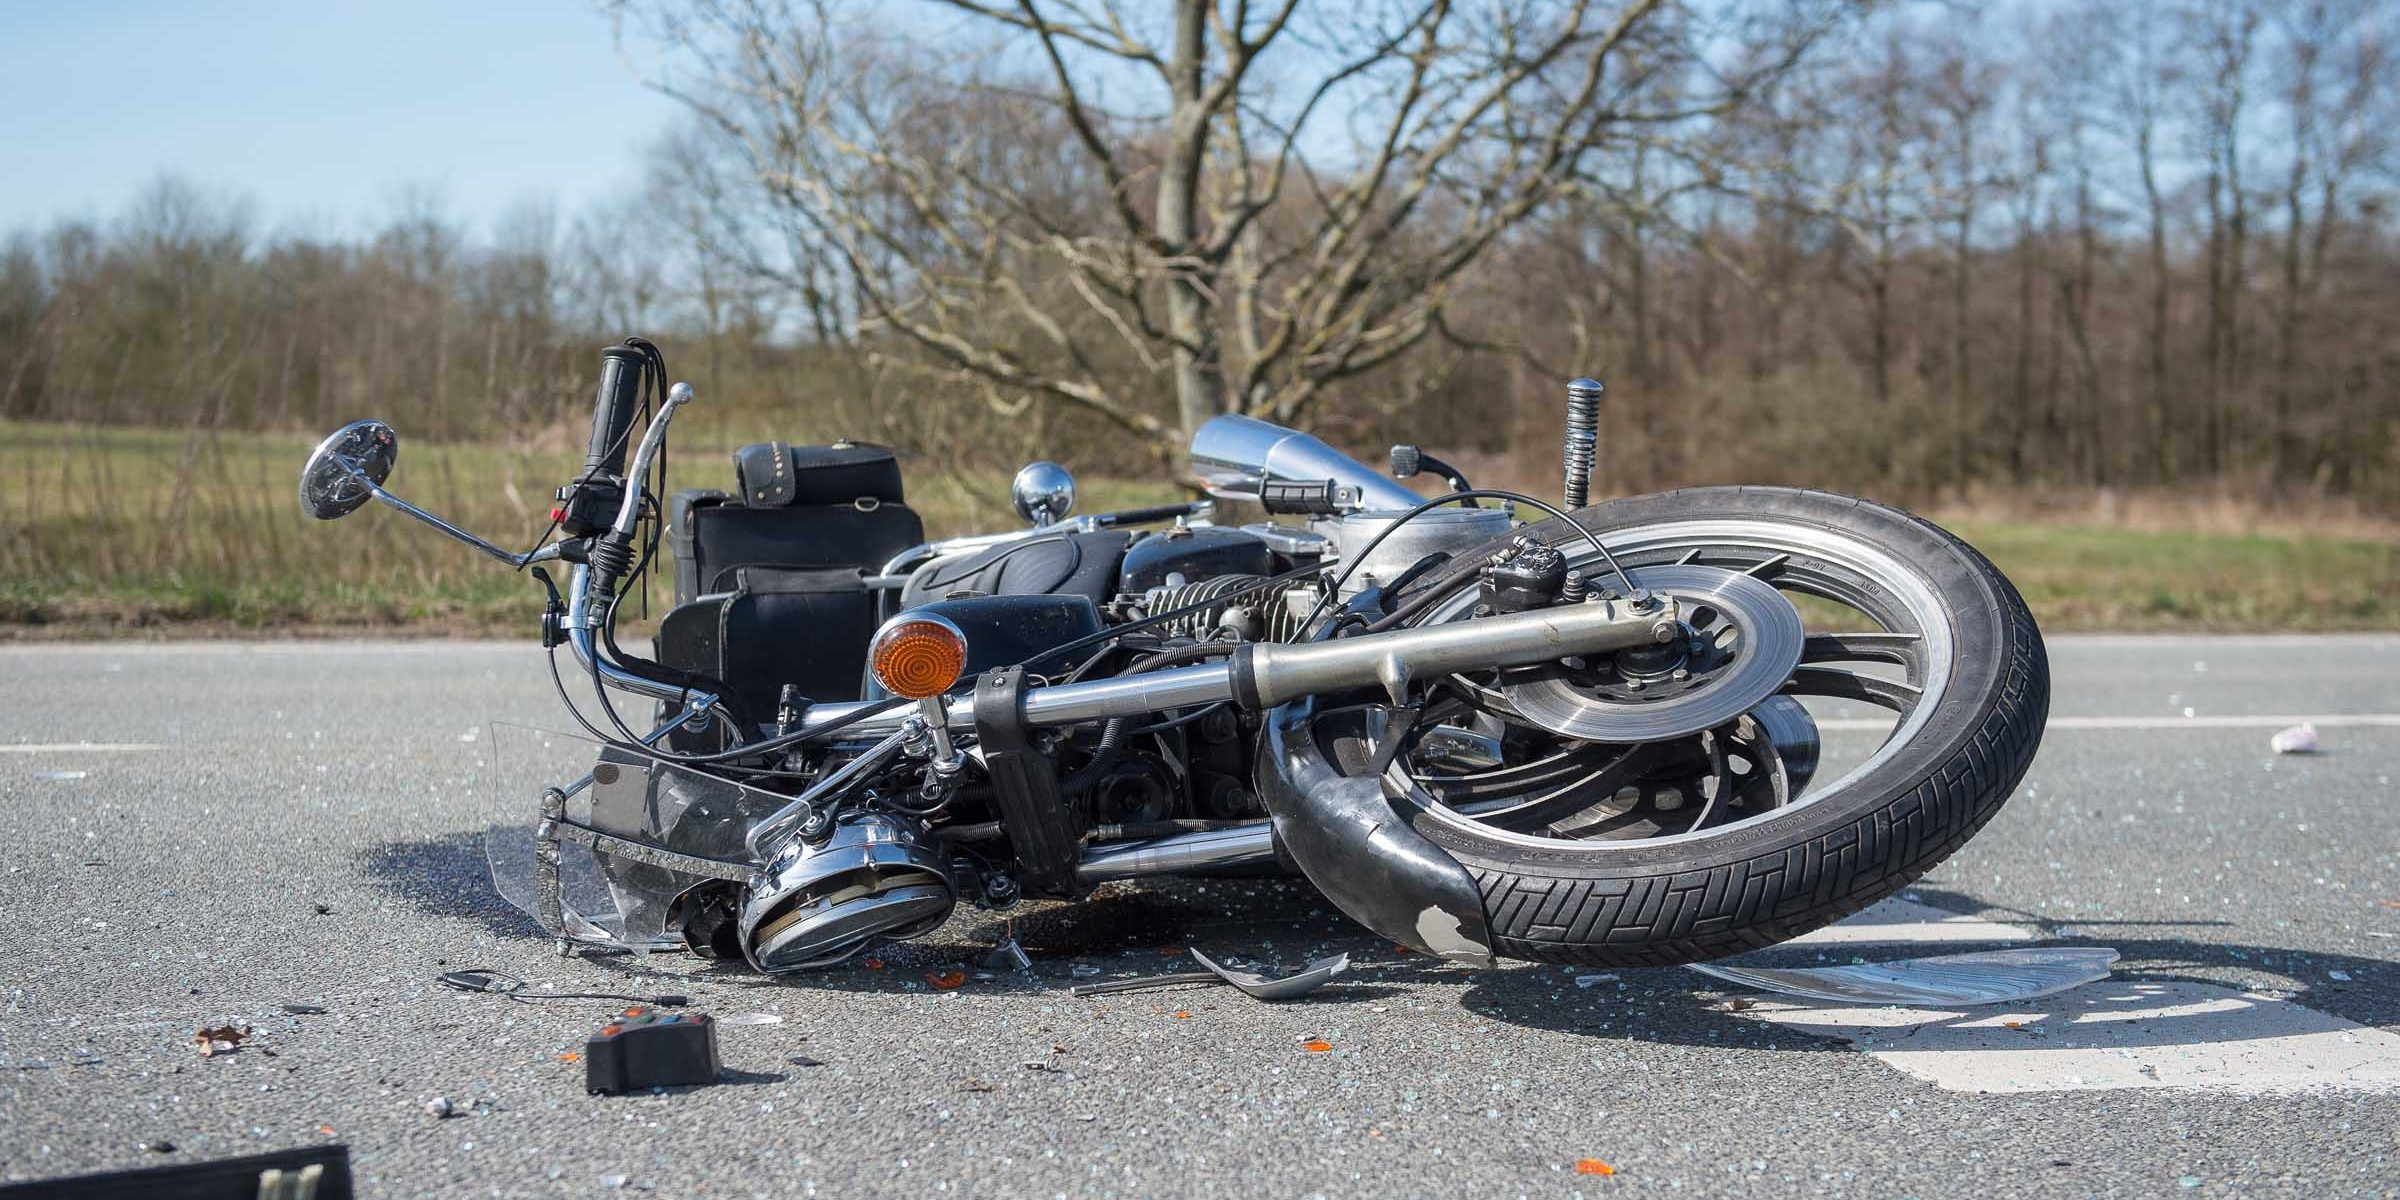 Motorcycle Accidents Resulting in Claims of Personal Injury